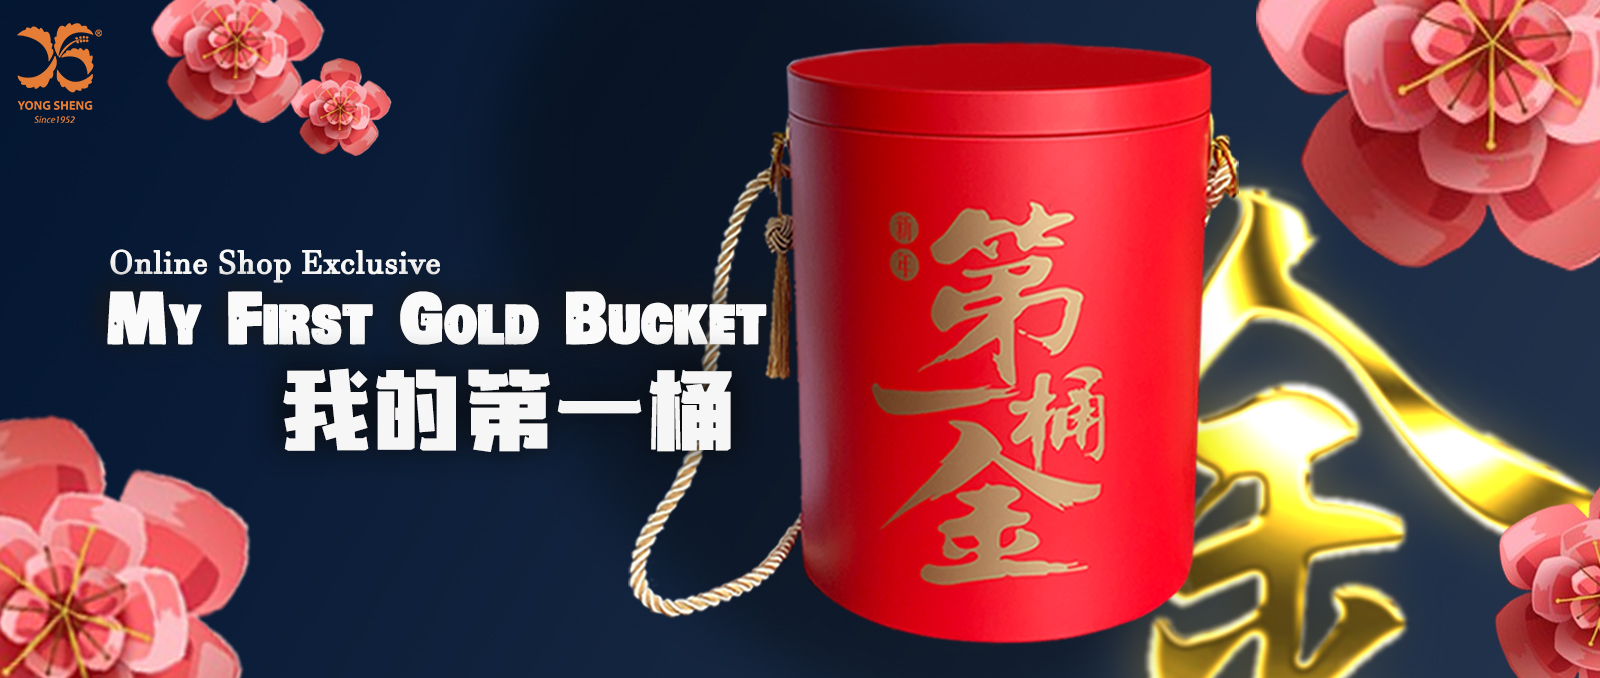 FirstGold Bucket_Banner 1500 x 678_Shine